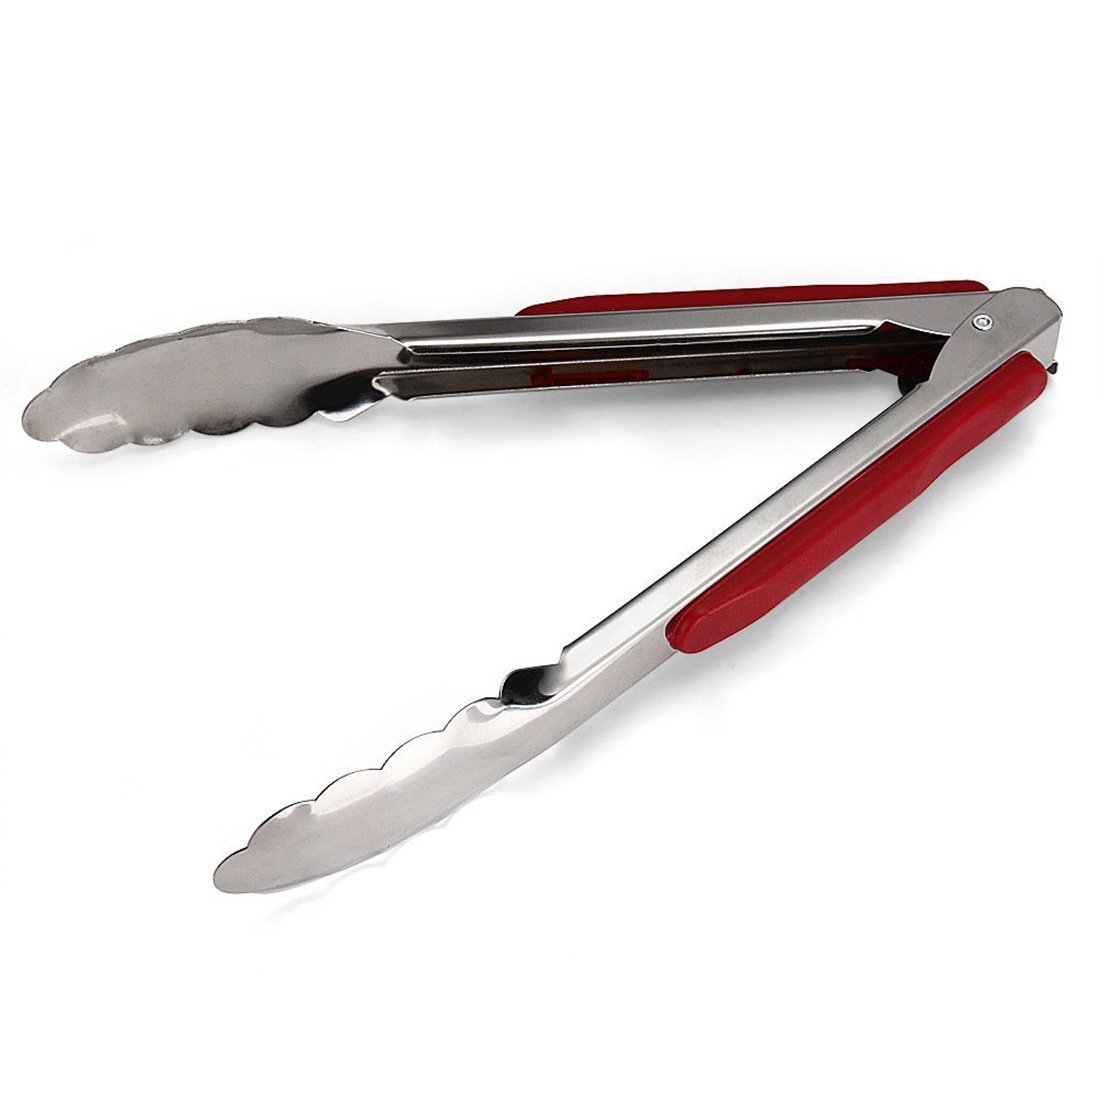 Stainless Steel Bread Clips Kitchen Tongs Food Cabob Steak Microwave Oven Barbecue Cooking Tool With Red ABS Hand Cover ASTrade TRTA11A